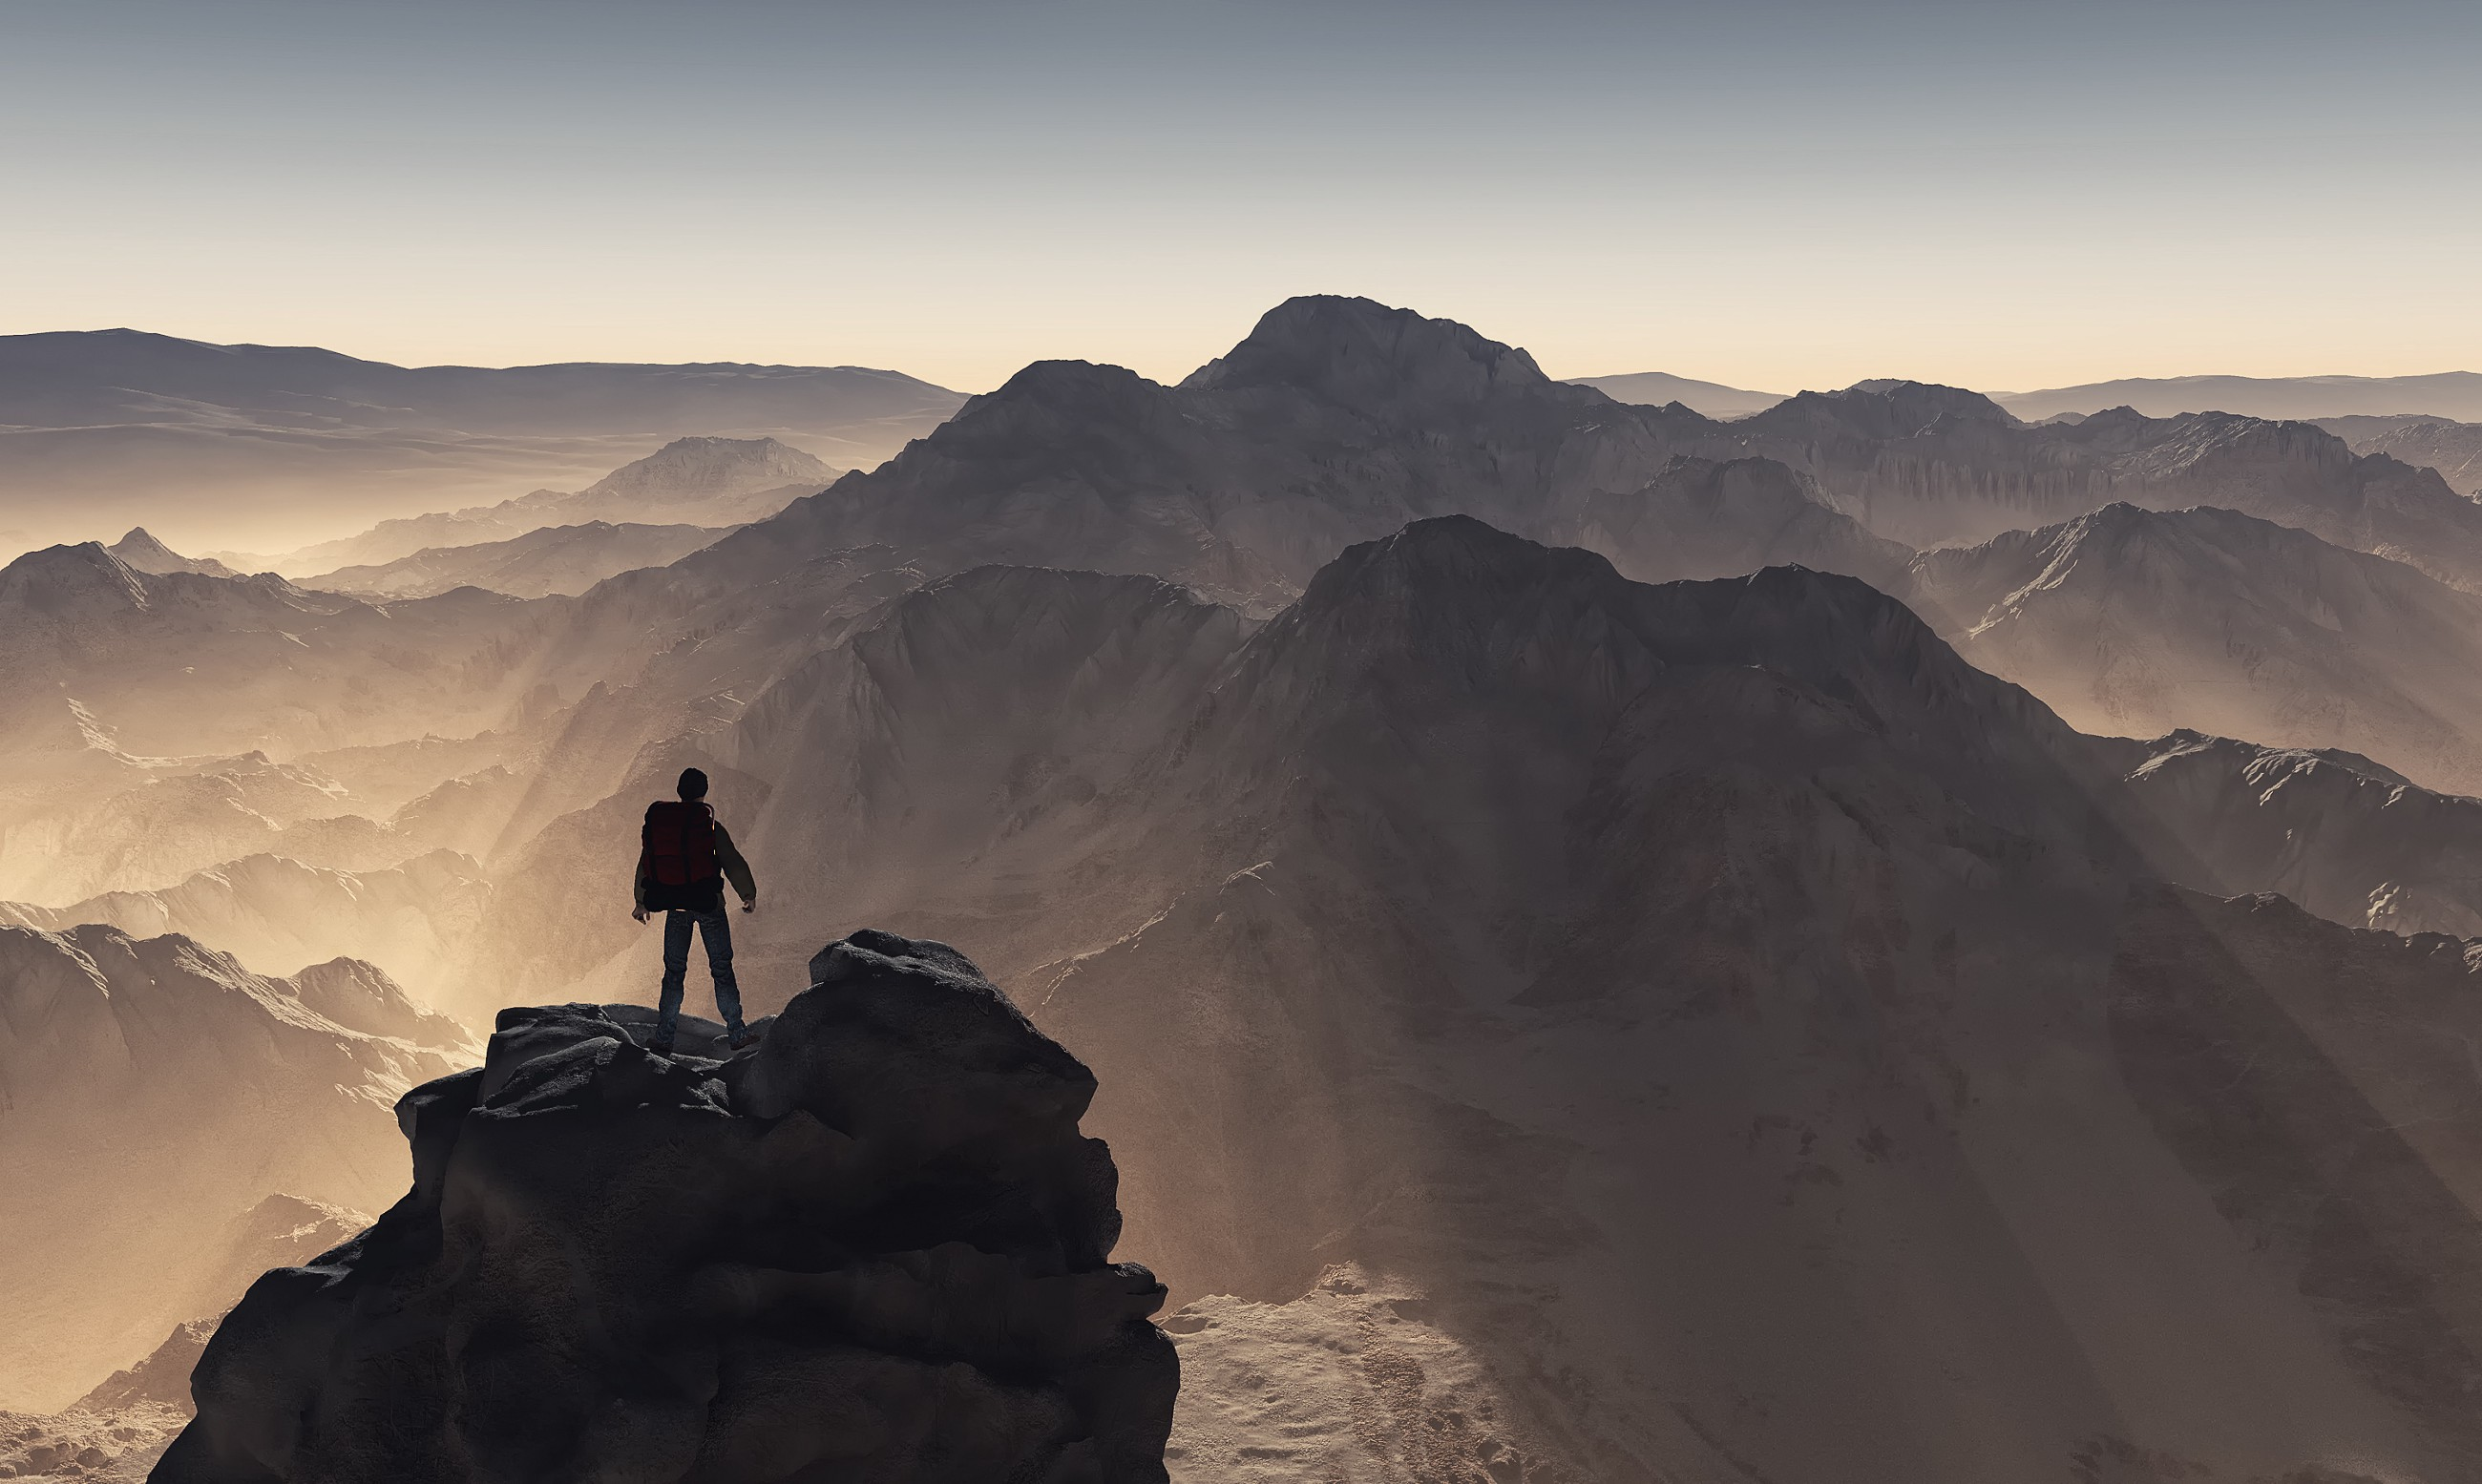 Man standing at the peak of the tallest mountain looking down at other mountains.